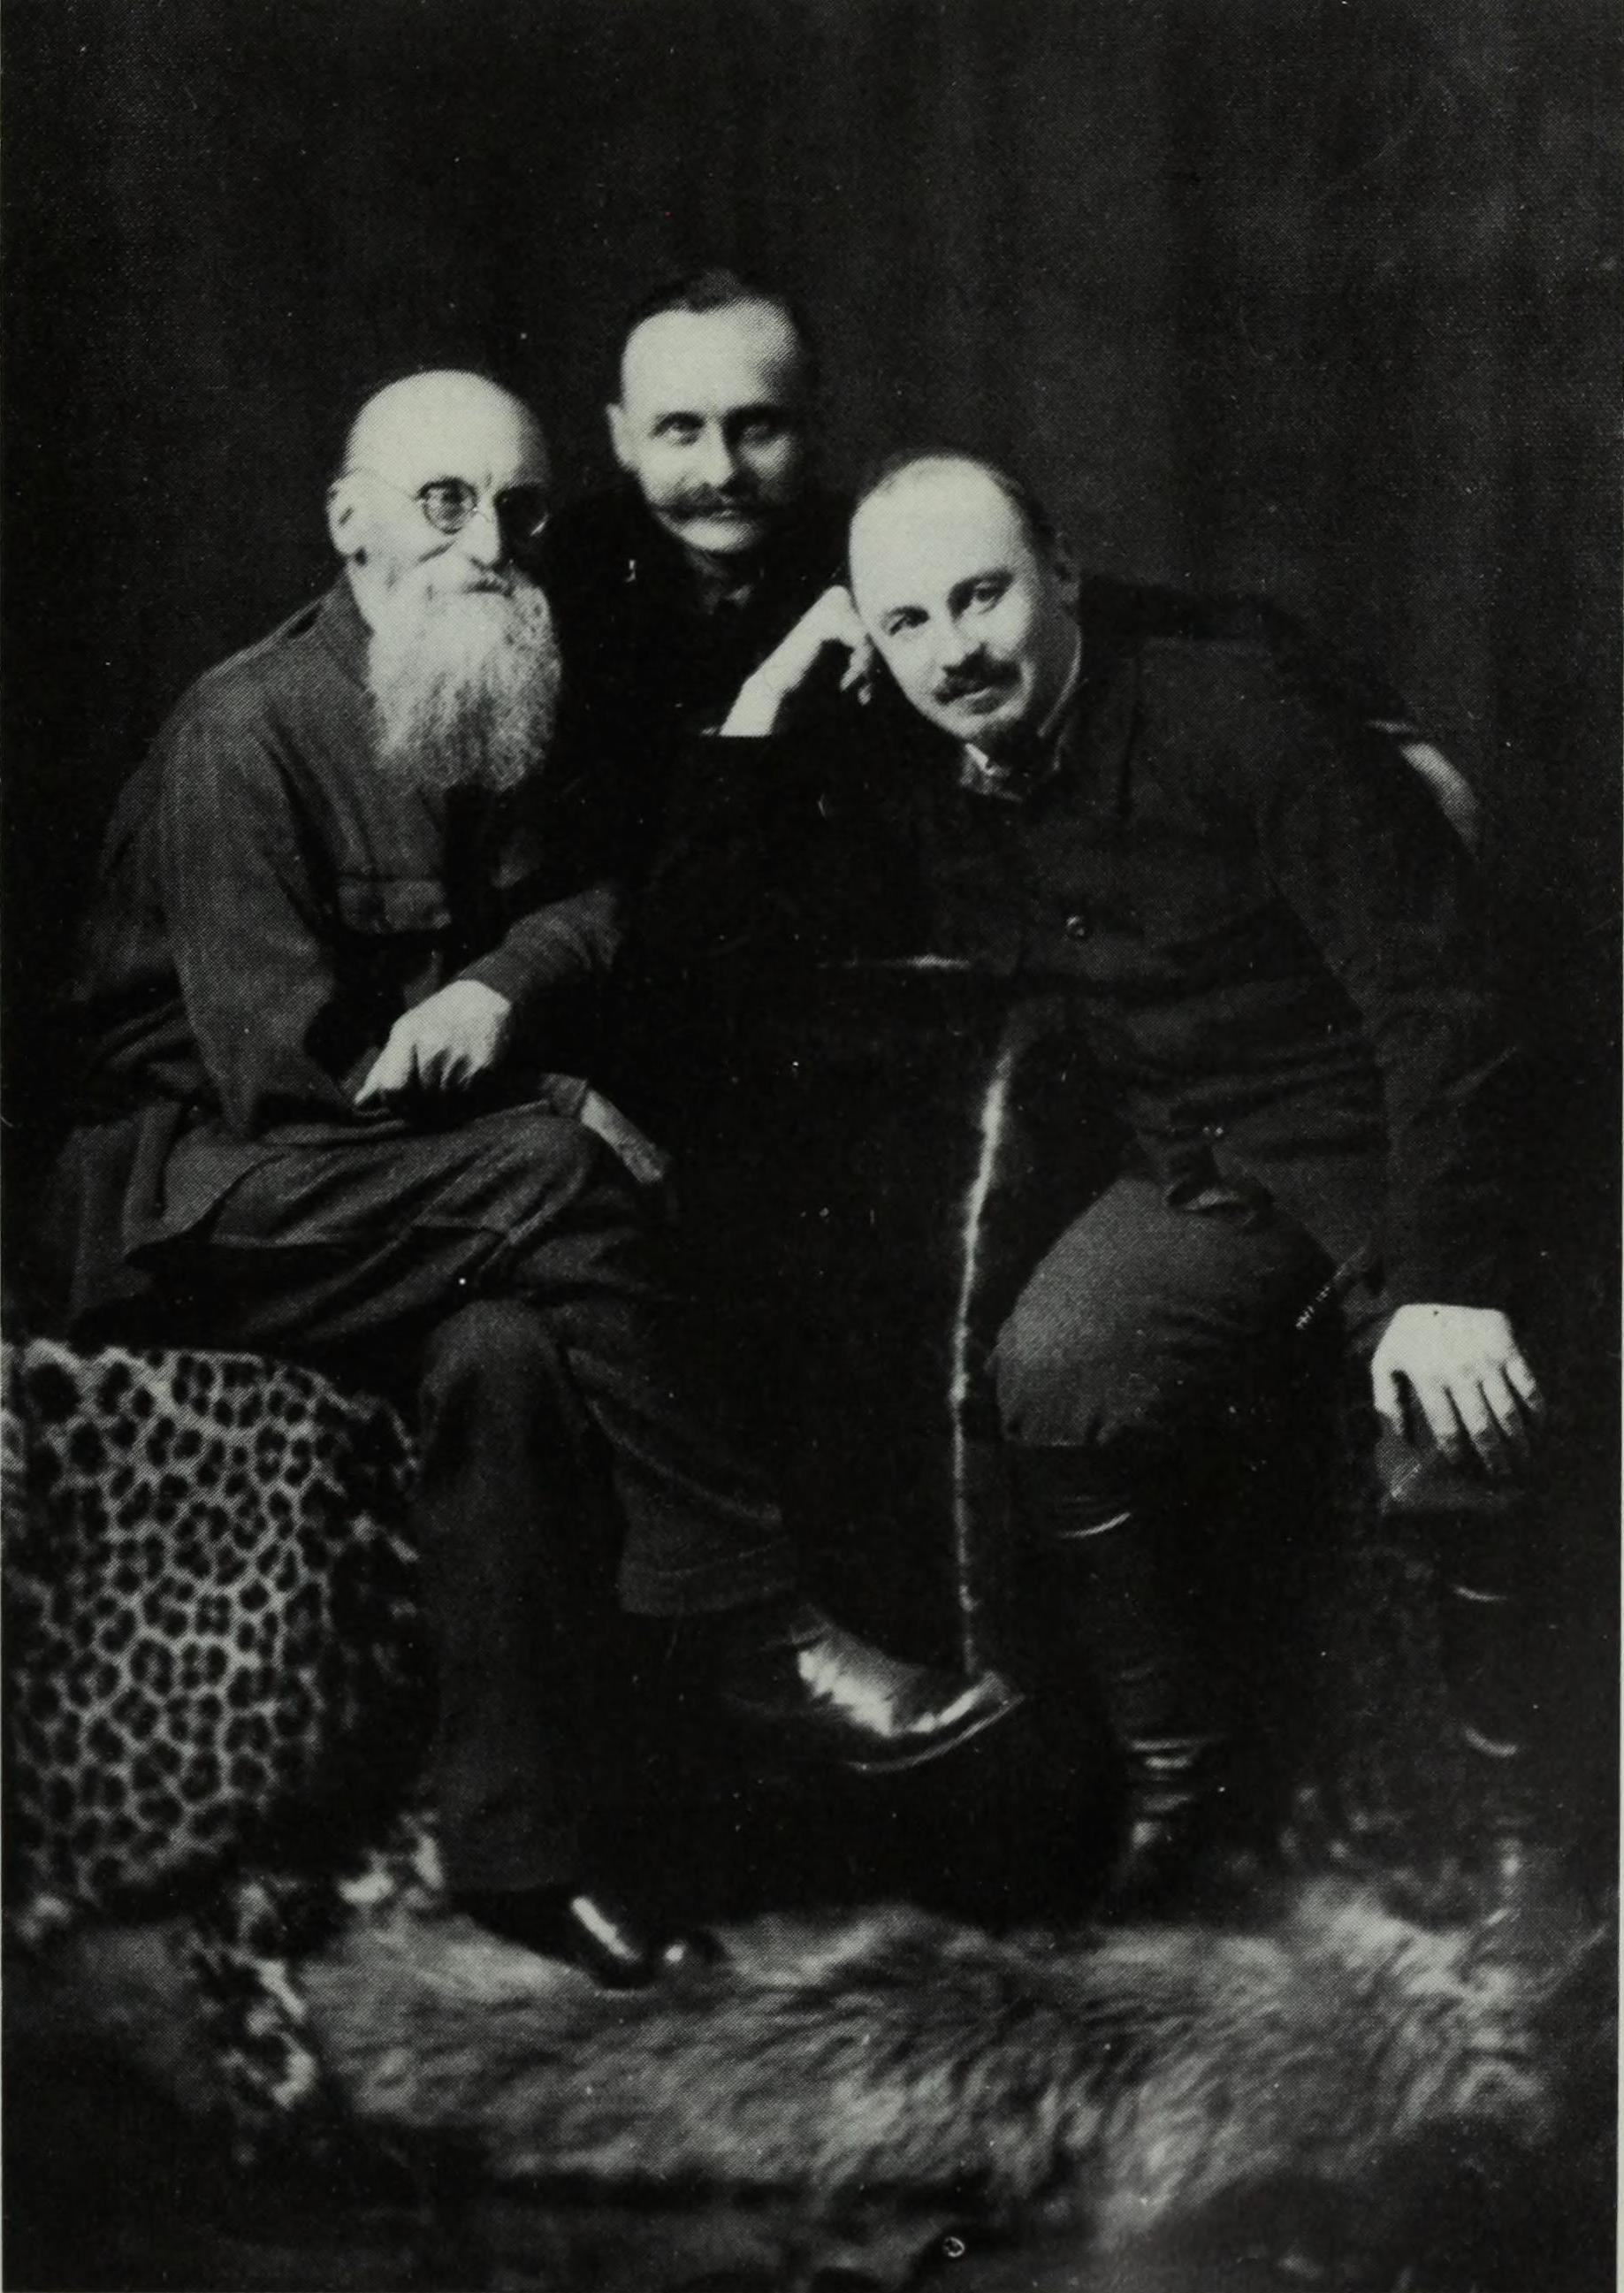 Bukharin with his brother Vladimir and father Ivan, mid-1920s